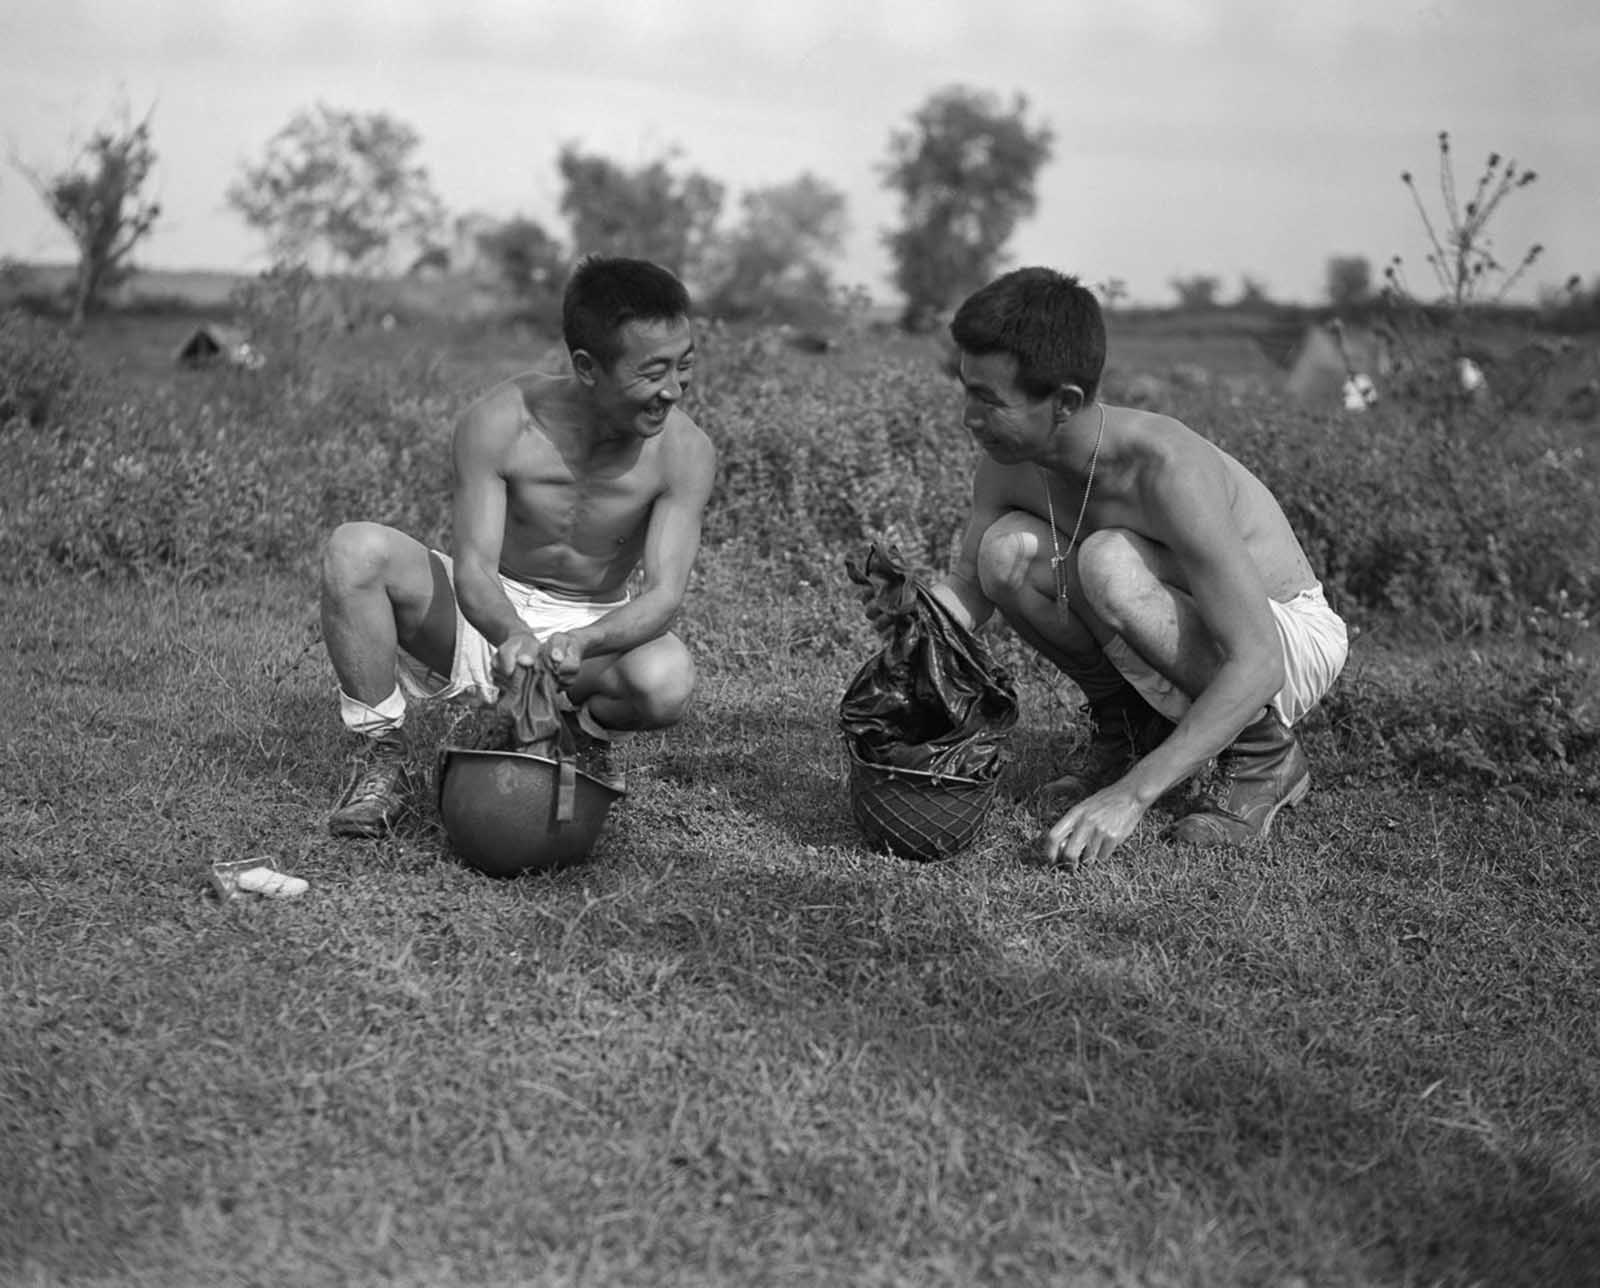 Shiro Yamato and Ginchi Masumotoya wash their uniforms in their helmets behind the lines during the invasion of Italy. October, 1943.